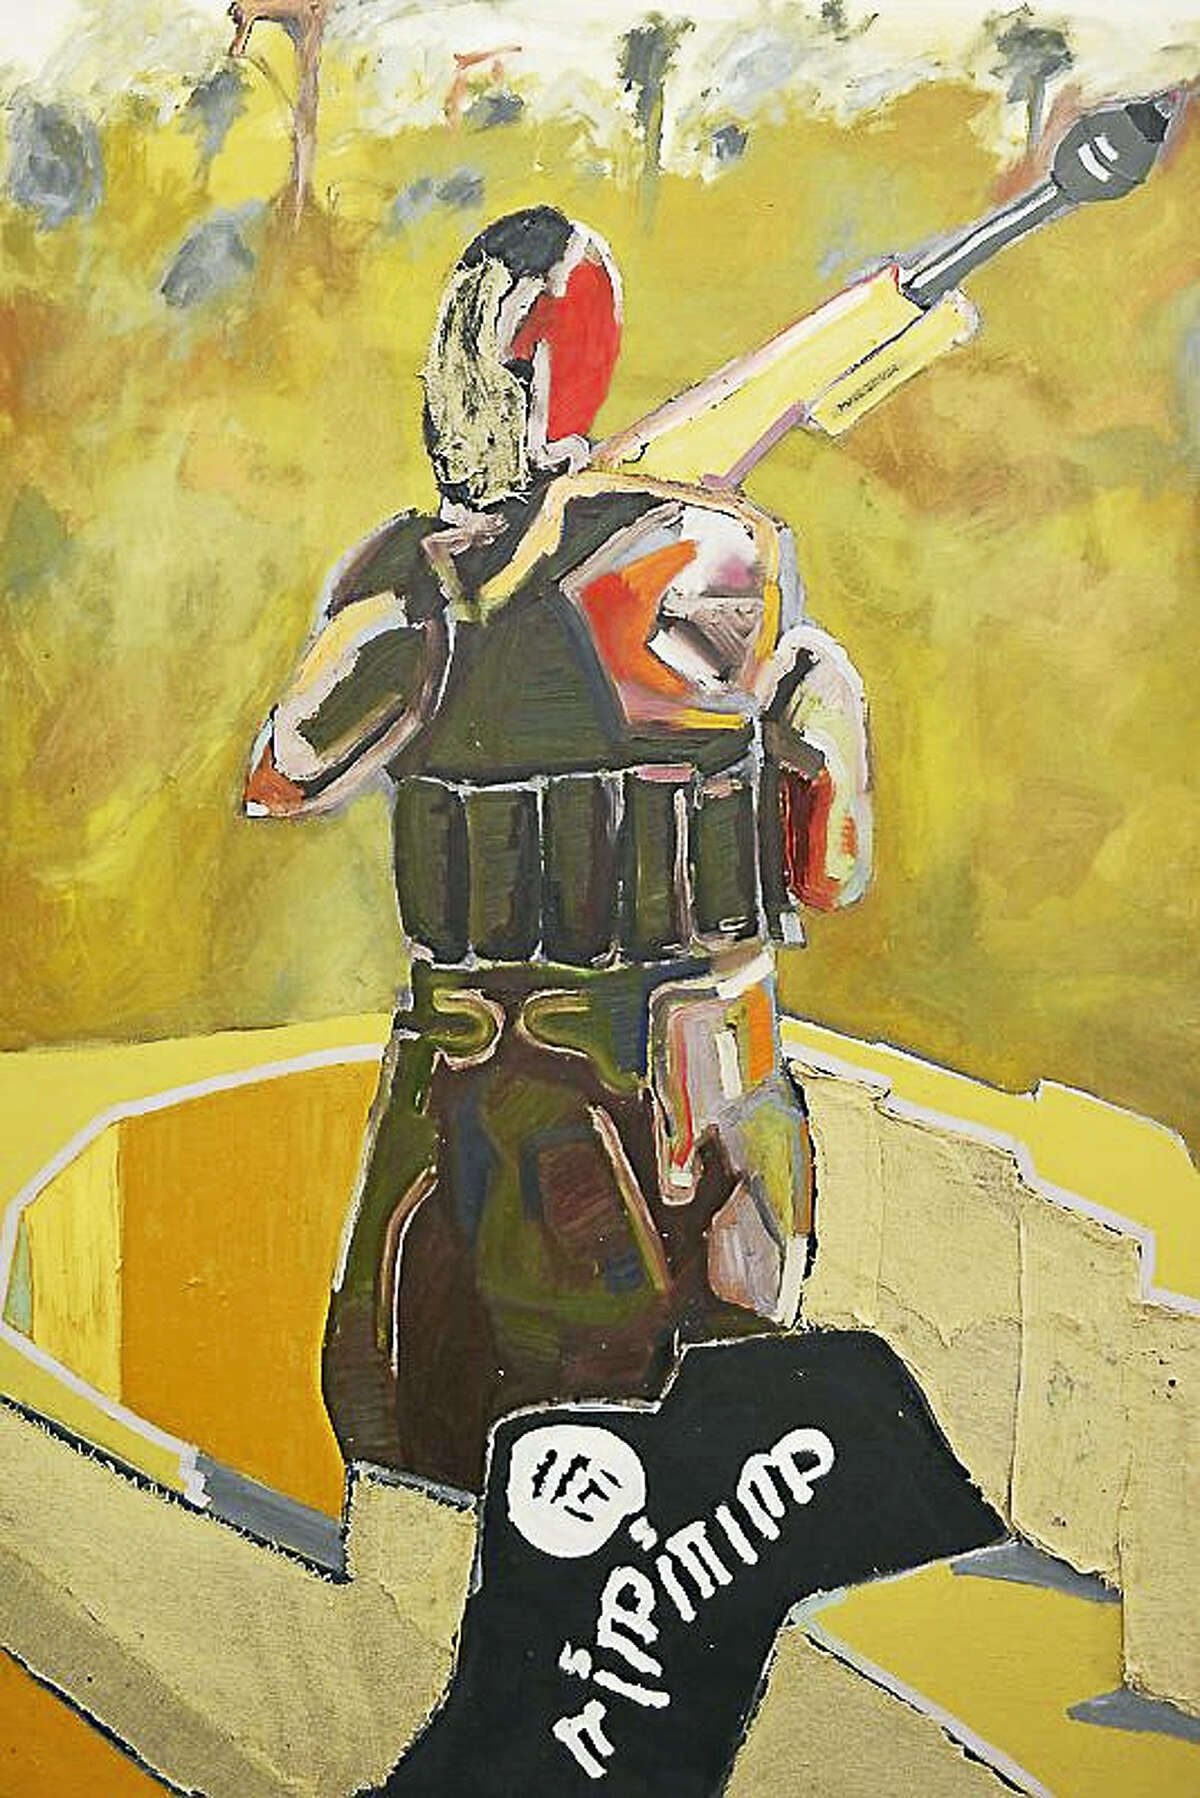 Paintings by Jacob Cullers are part of a new show opening in March at the Washington Art Association.